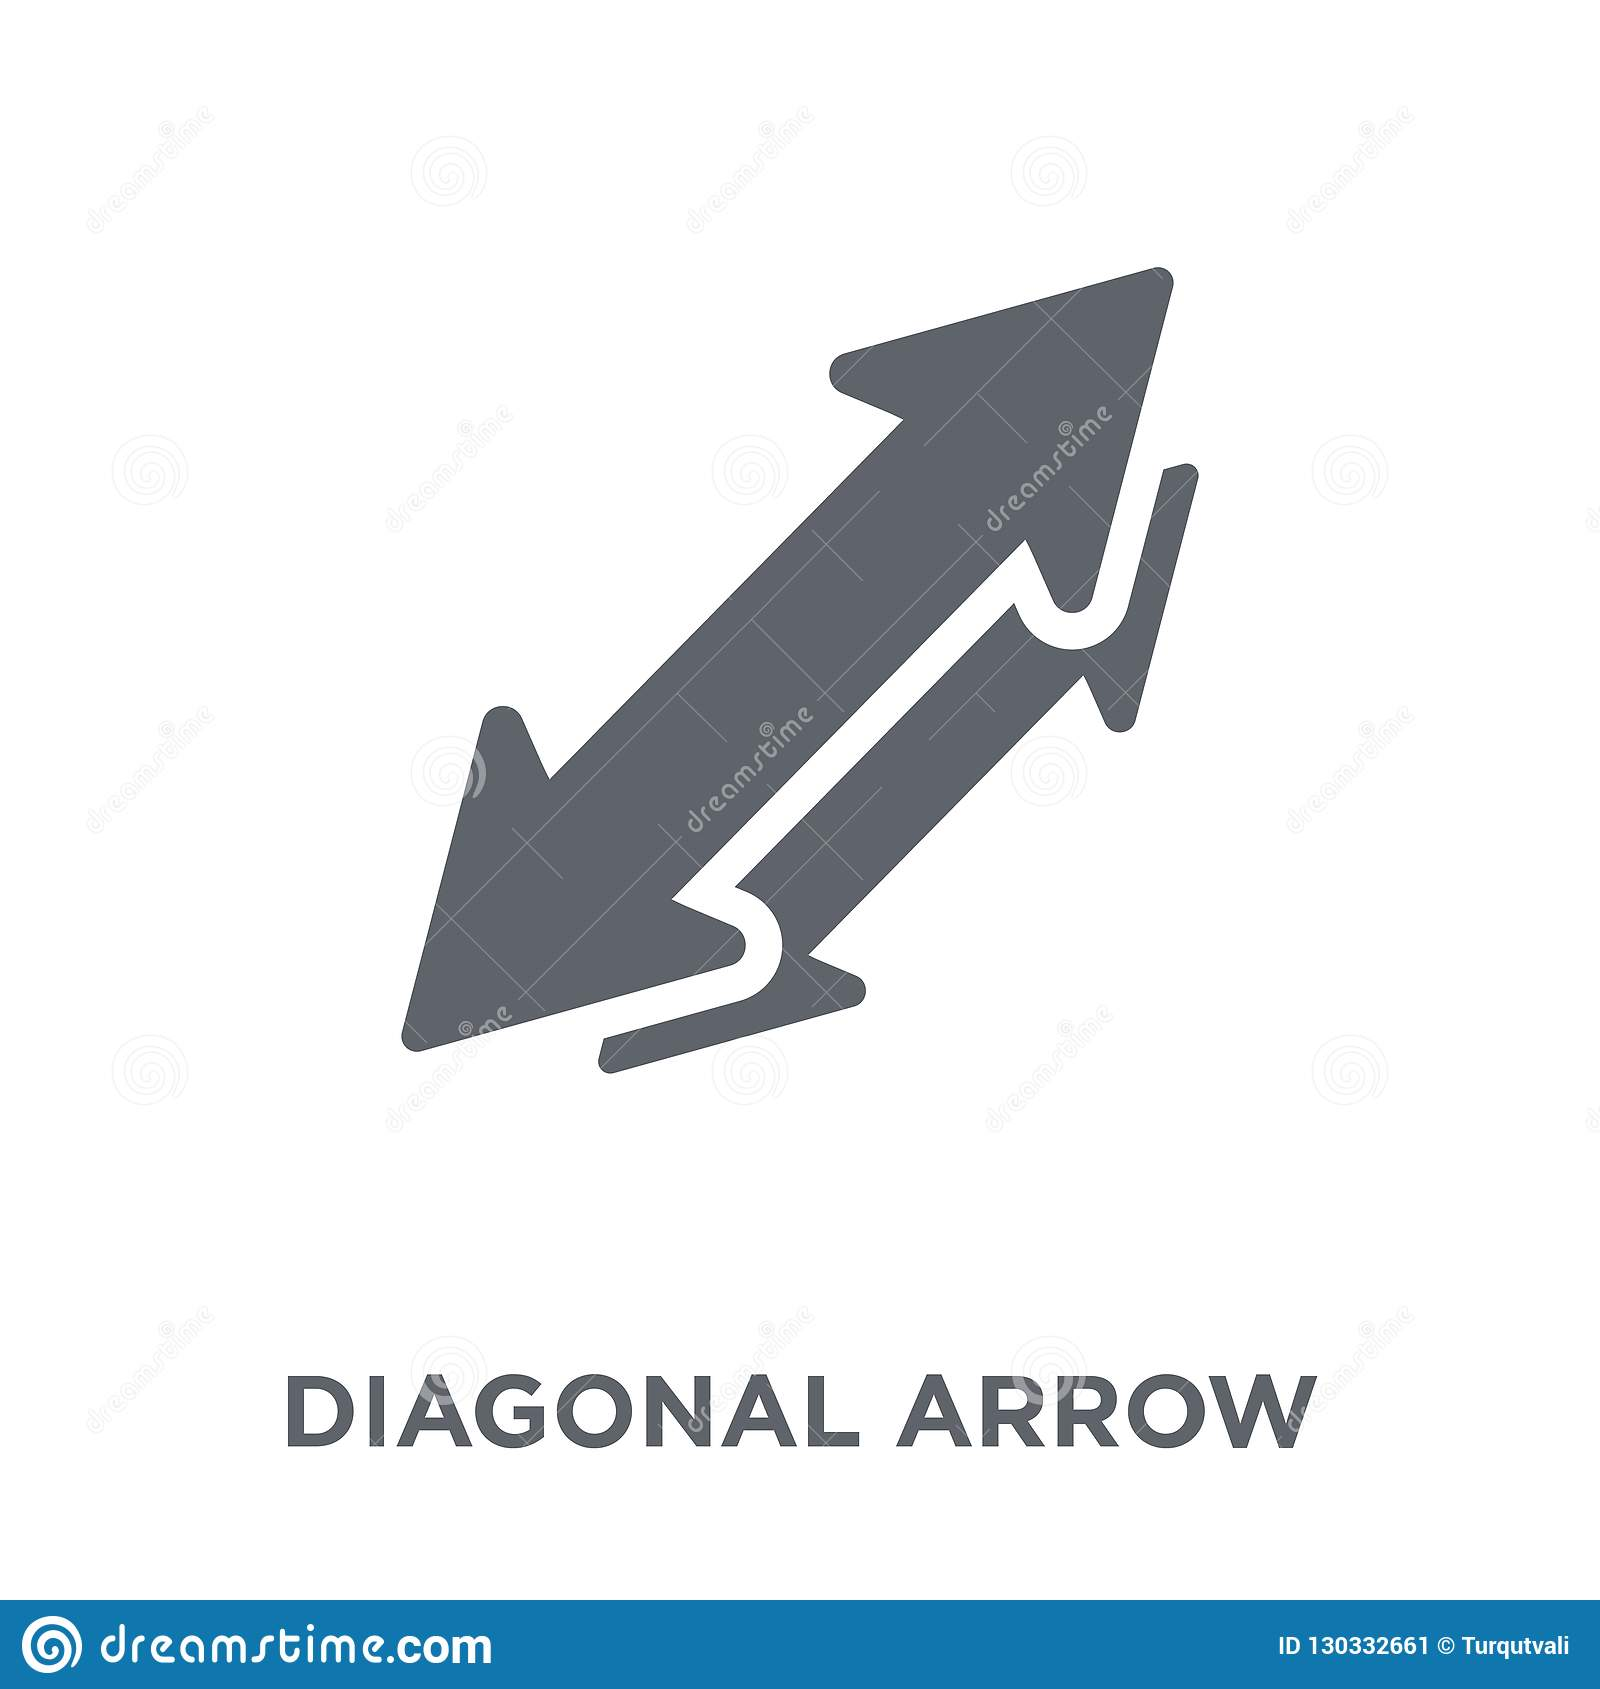 Diagonal arrow icon from collection.